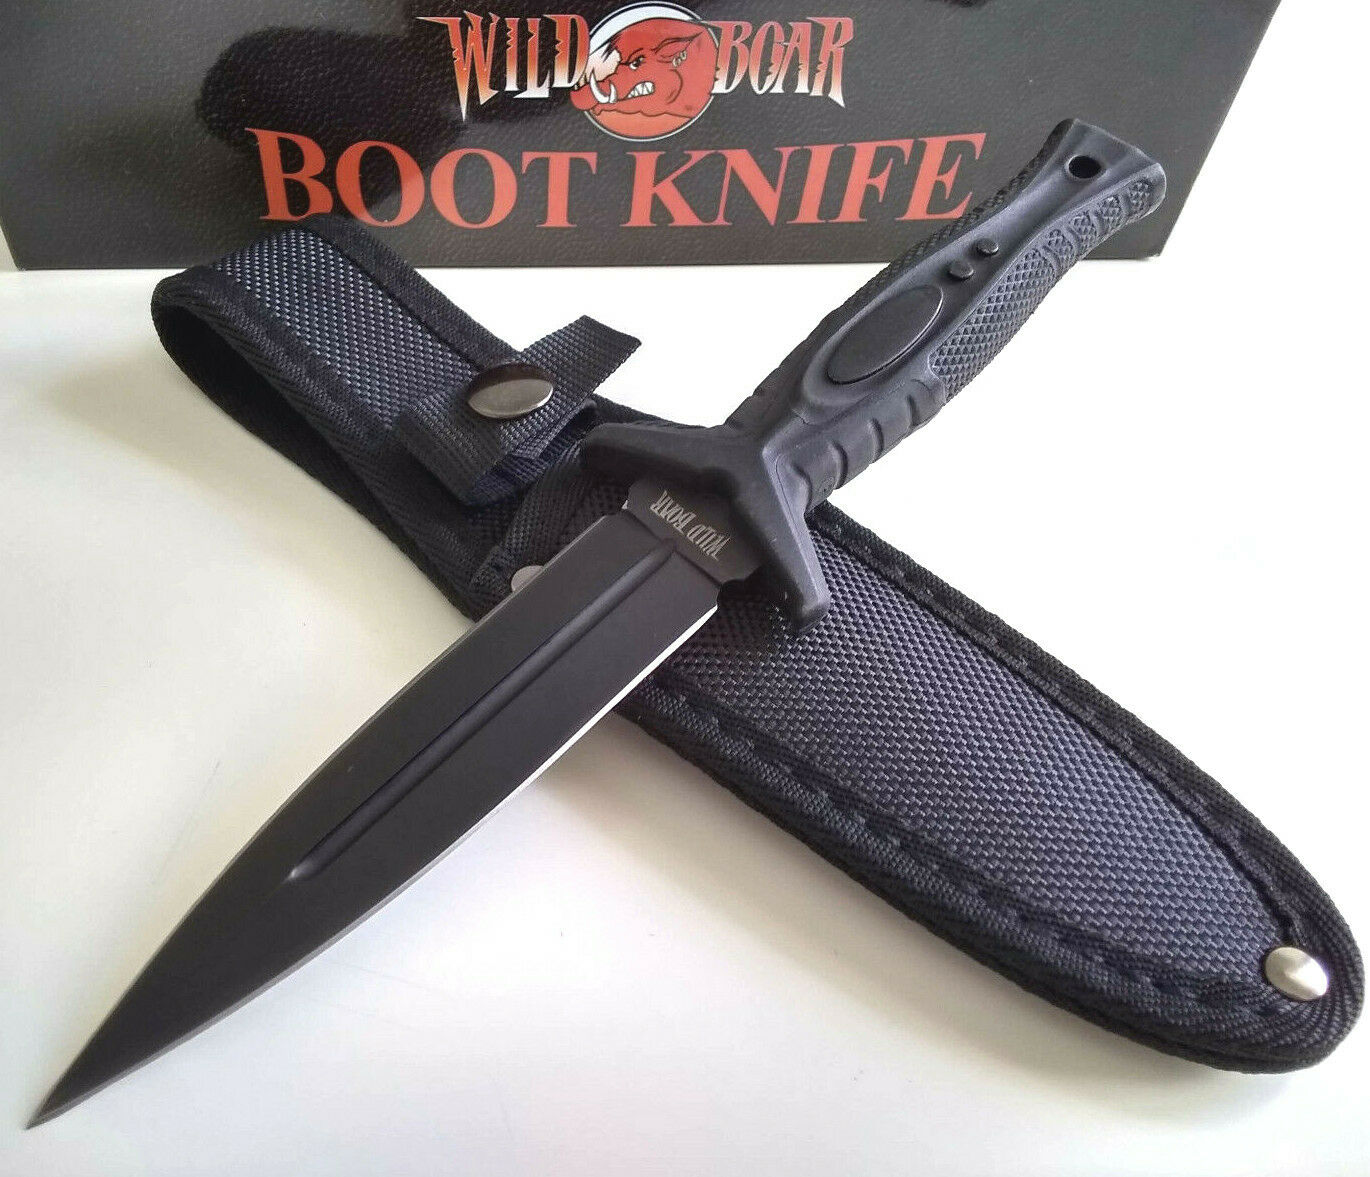 Wild Boar Dual Double Edged Fixed Blade Boot Knife Concealed Carry Survival w/Sheath EDC